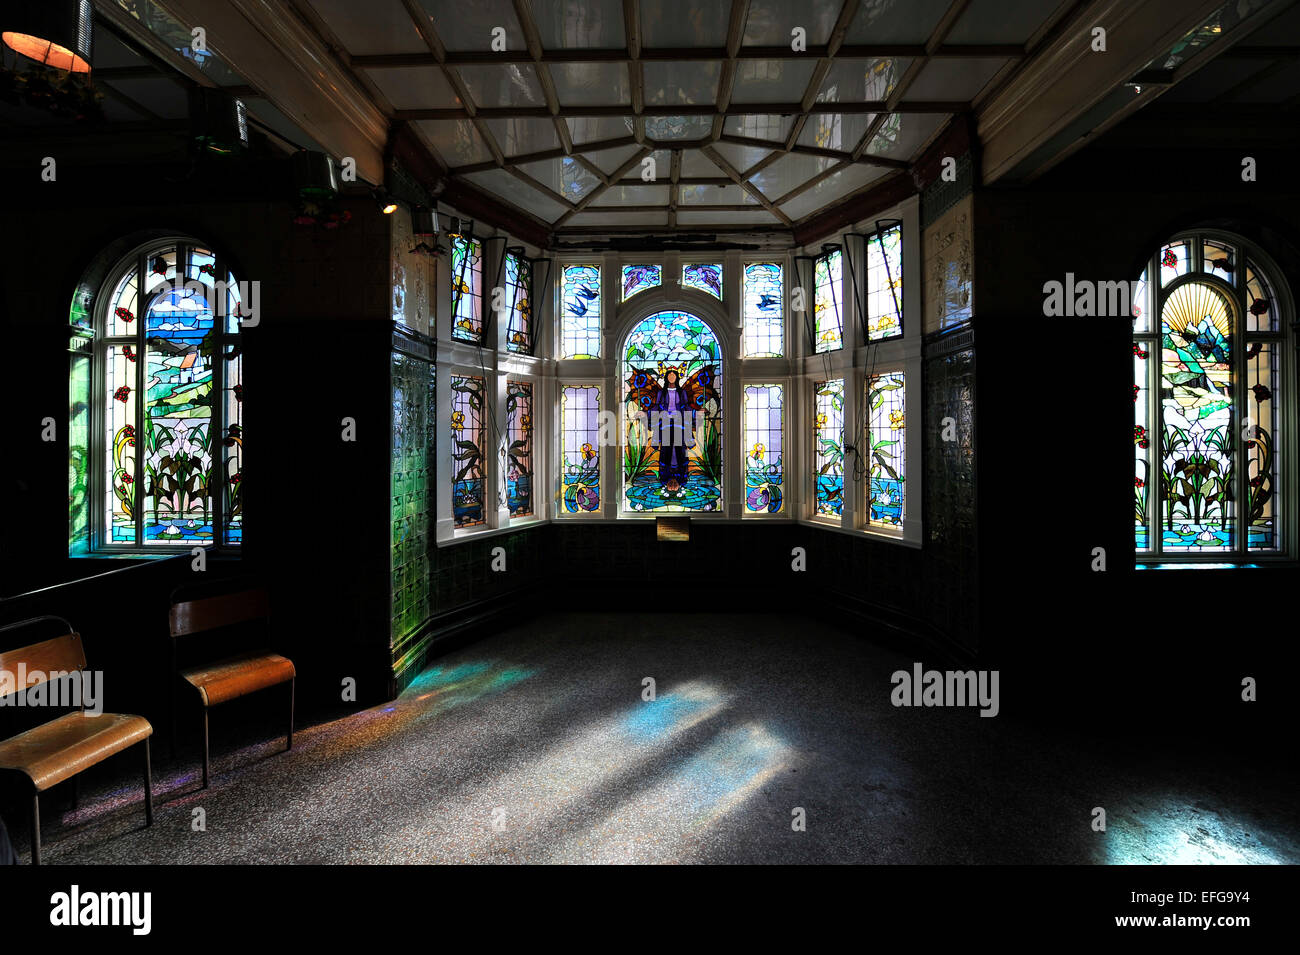 Stained glass interior in Victoria Baths, Manchester - Stock Image